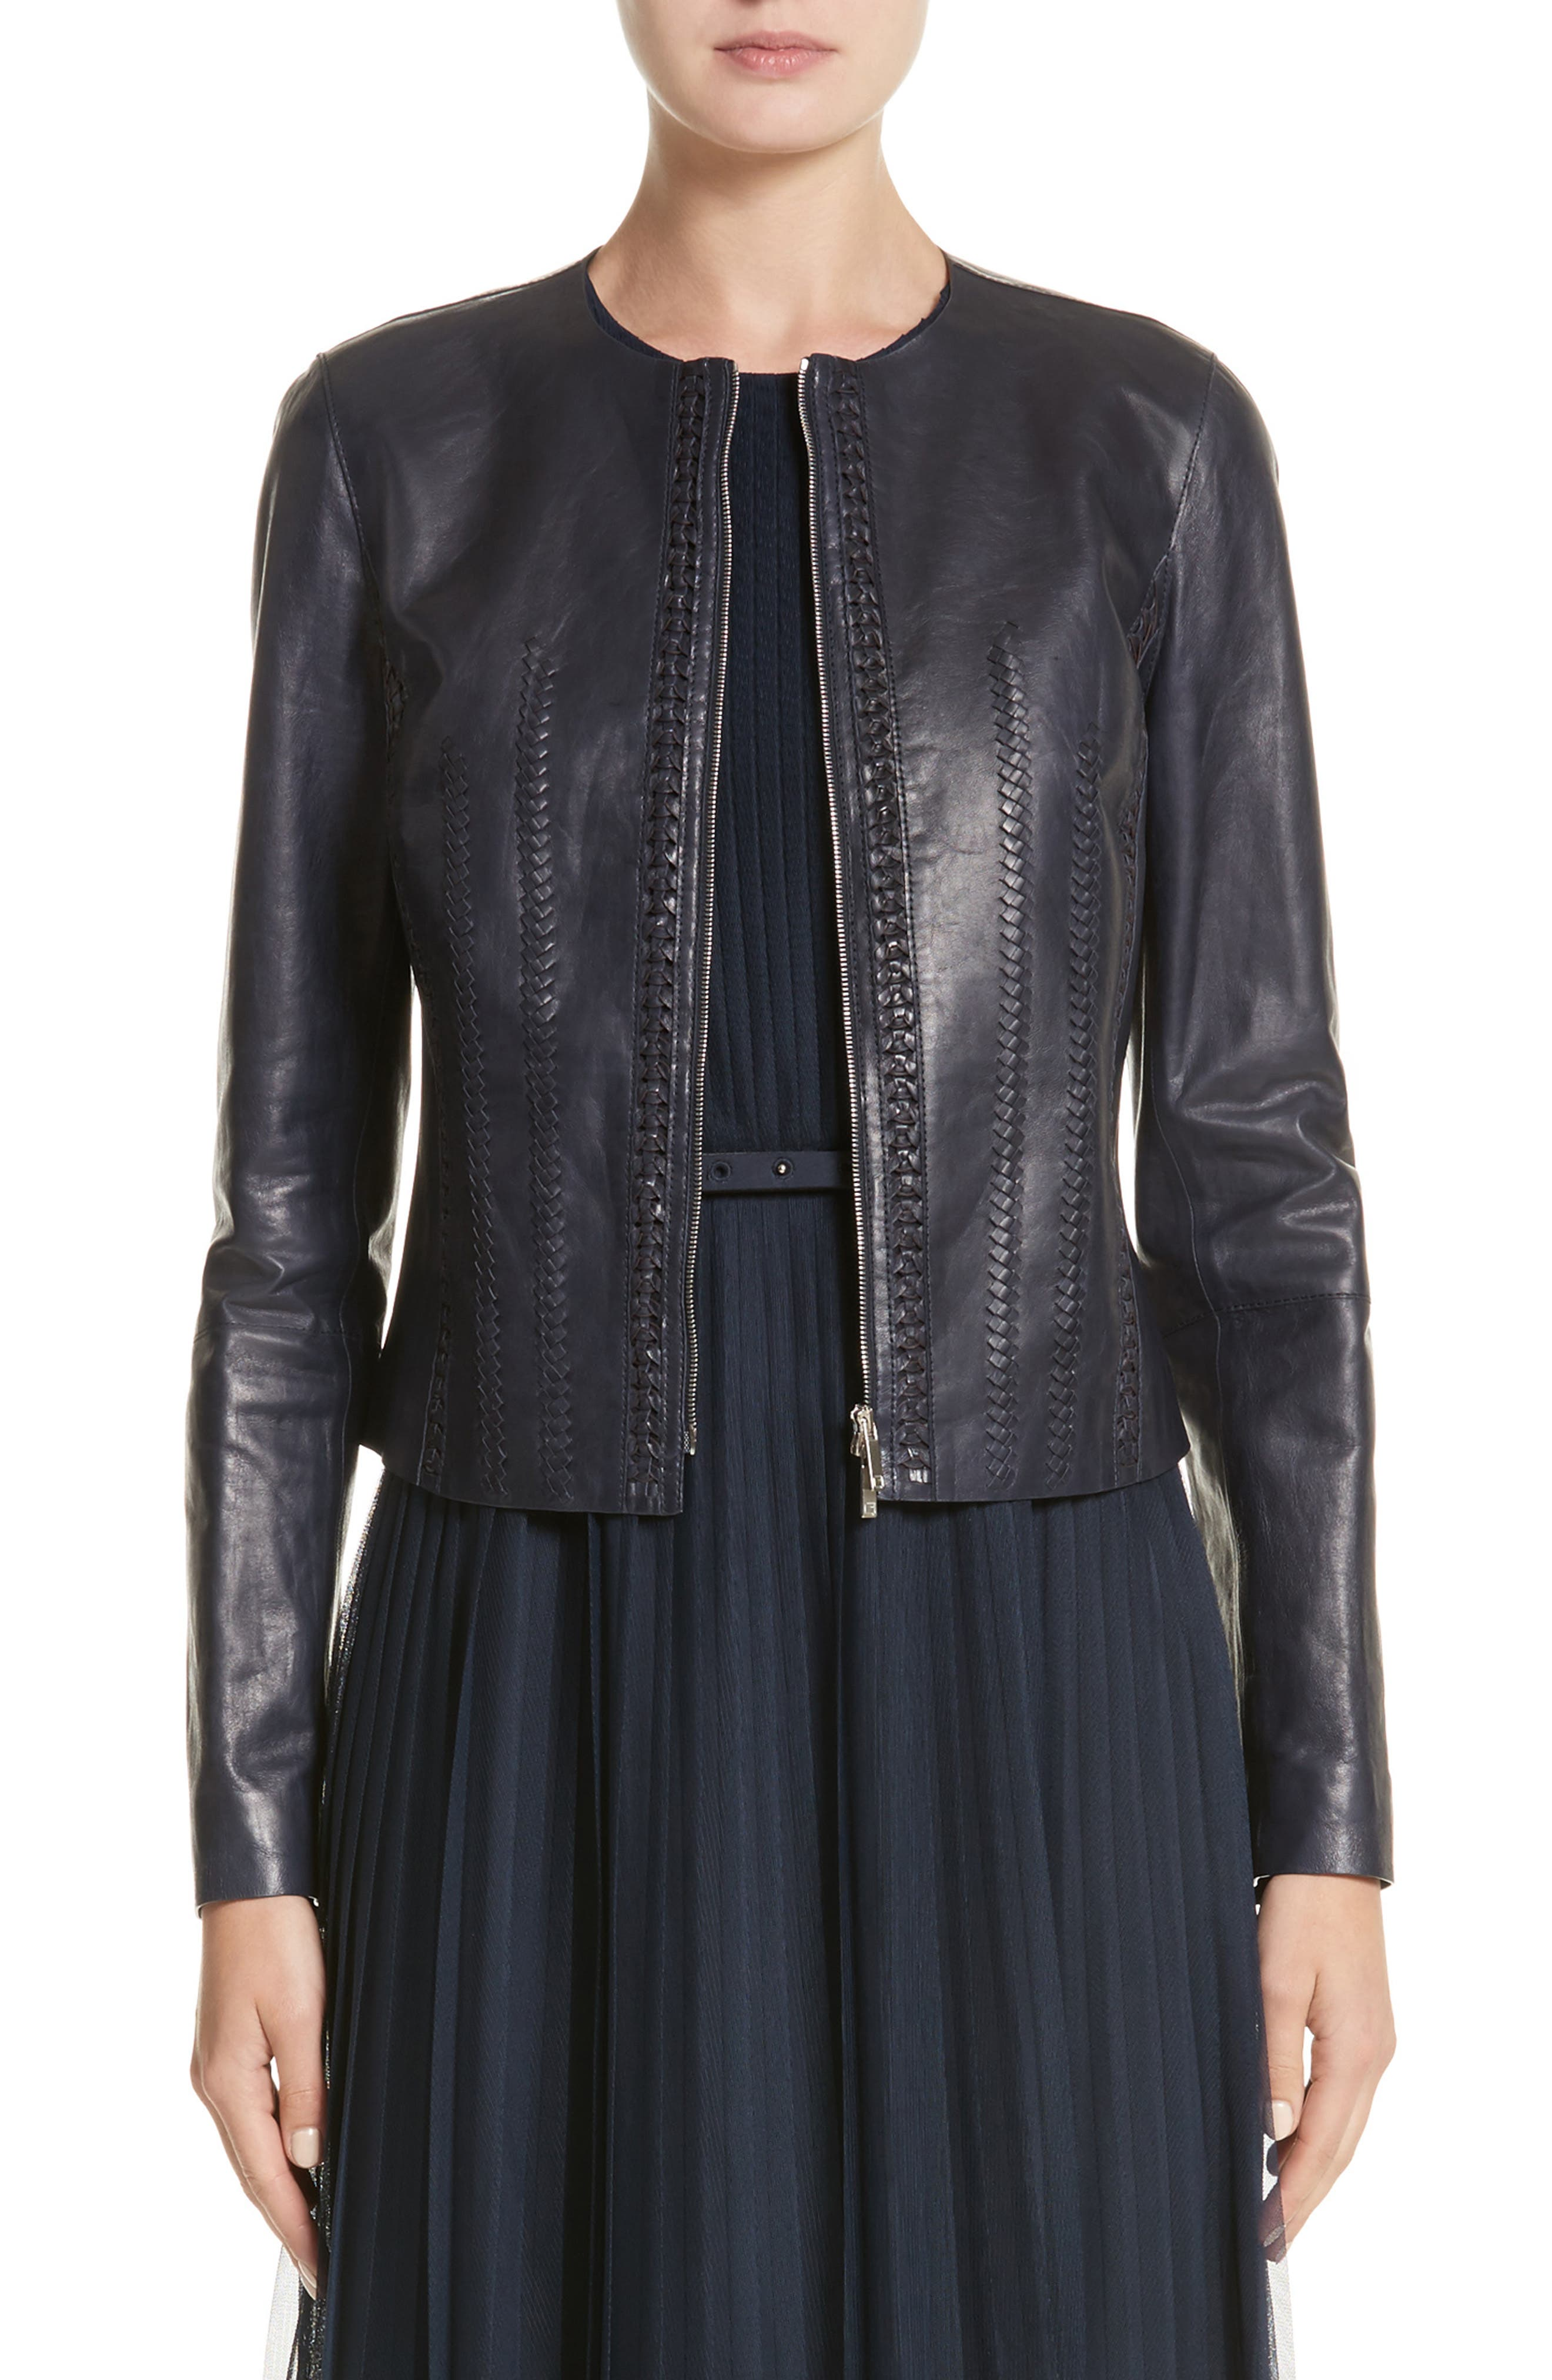 Clyde Lambskin Leather Jacket,                             Main thumbnail 1, color,                             479